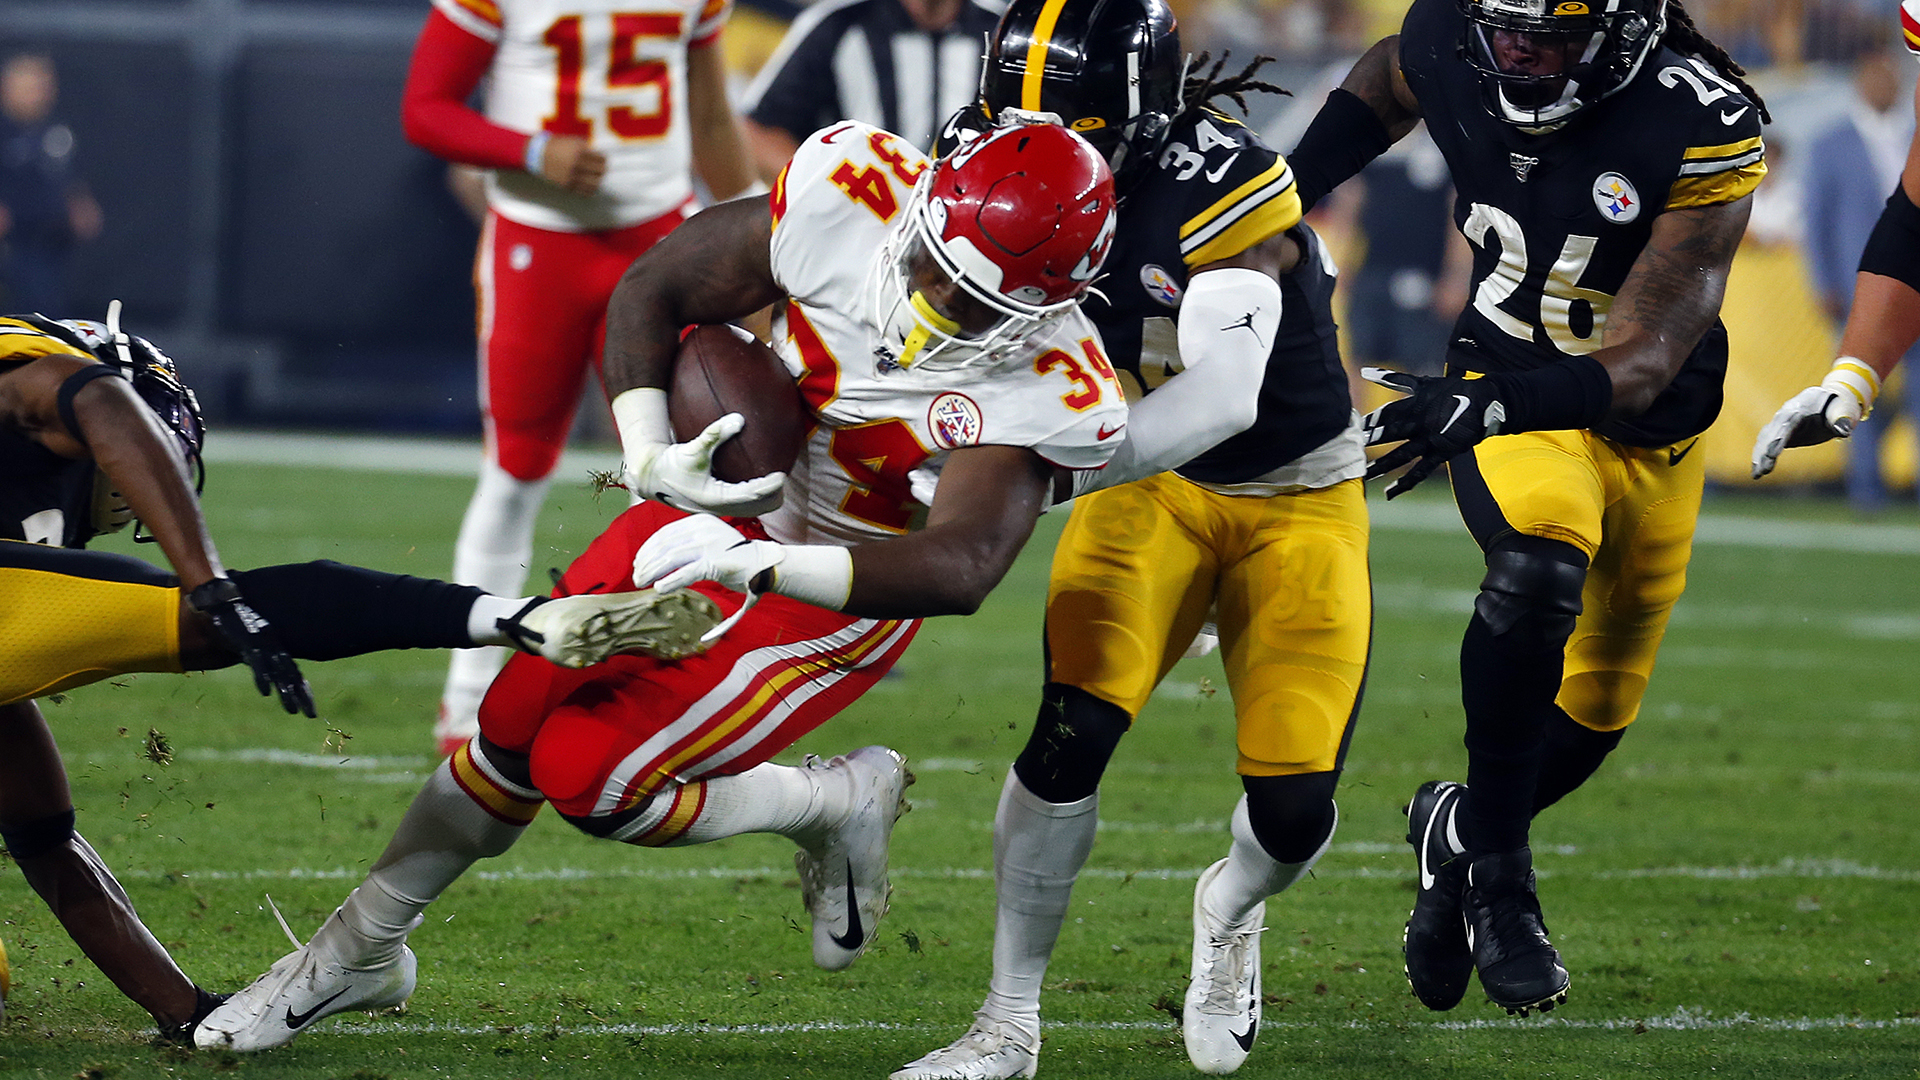 NFL trade news: Texans acquire Carlos Hyde from Chiefs in wake of Lamar Miller injury